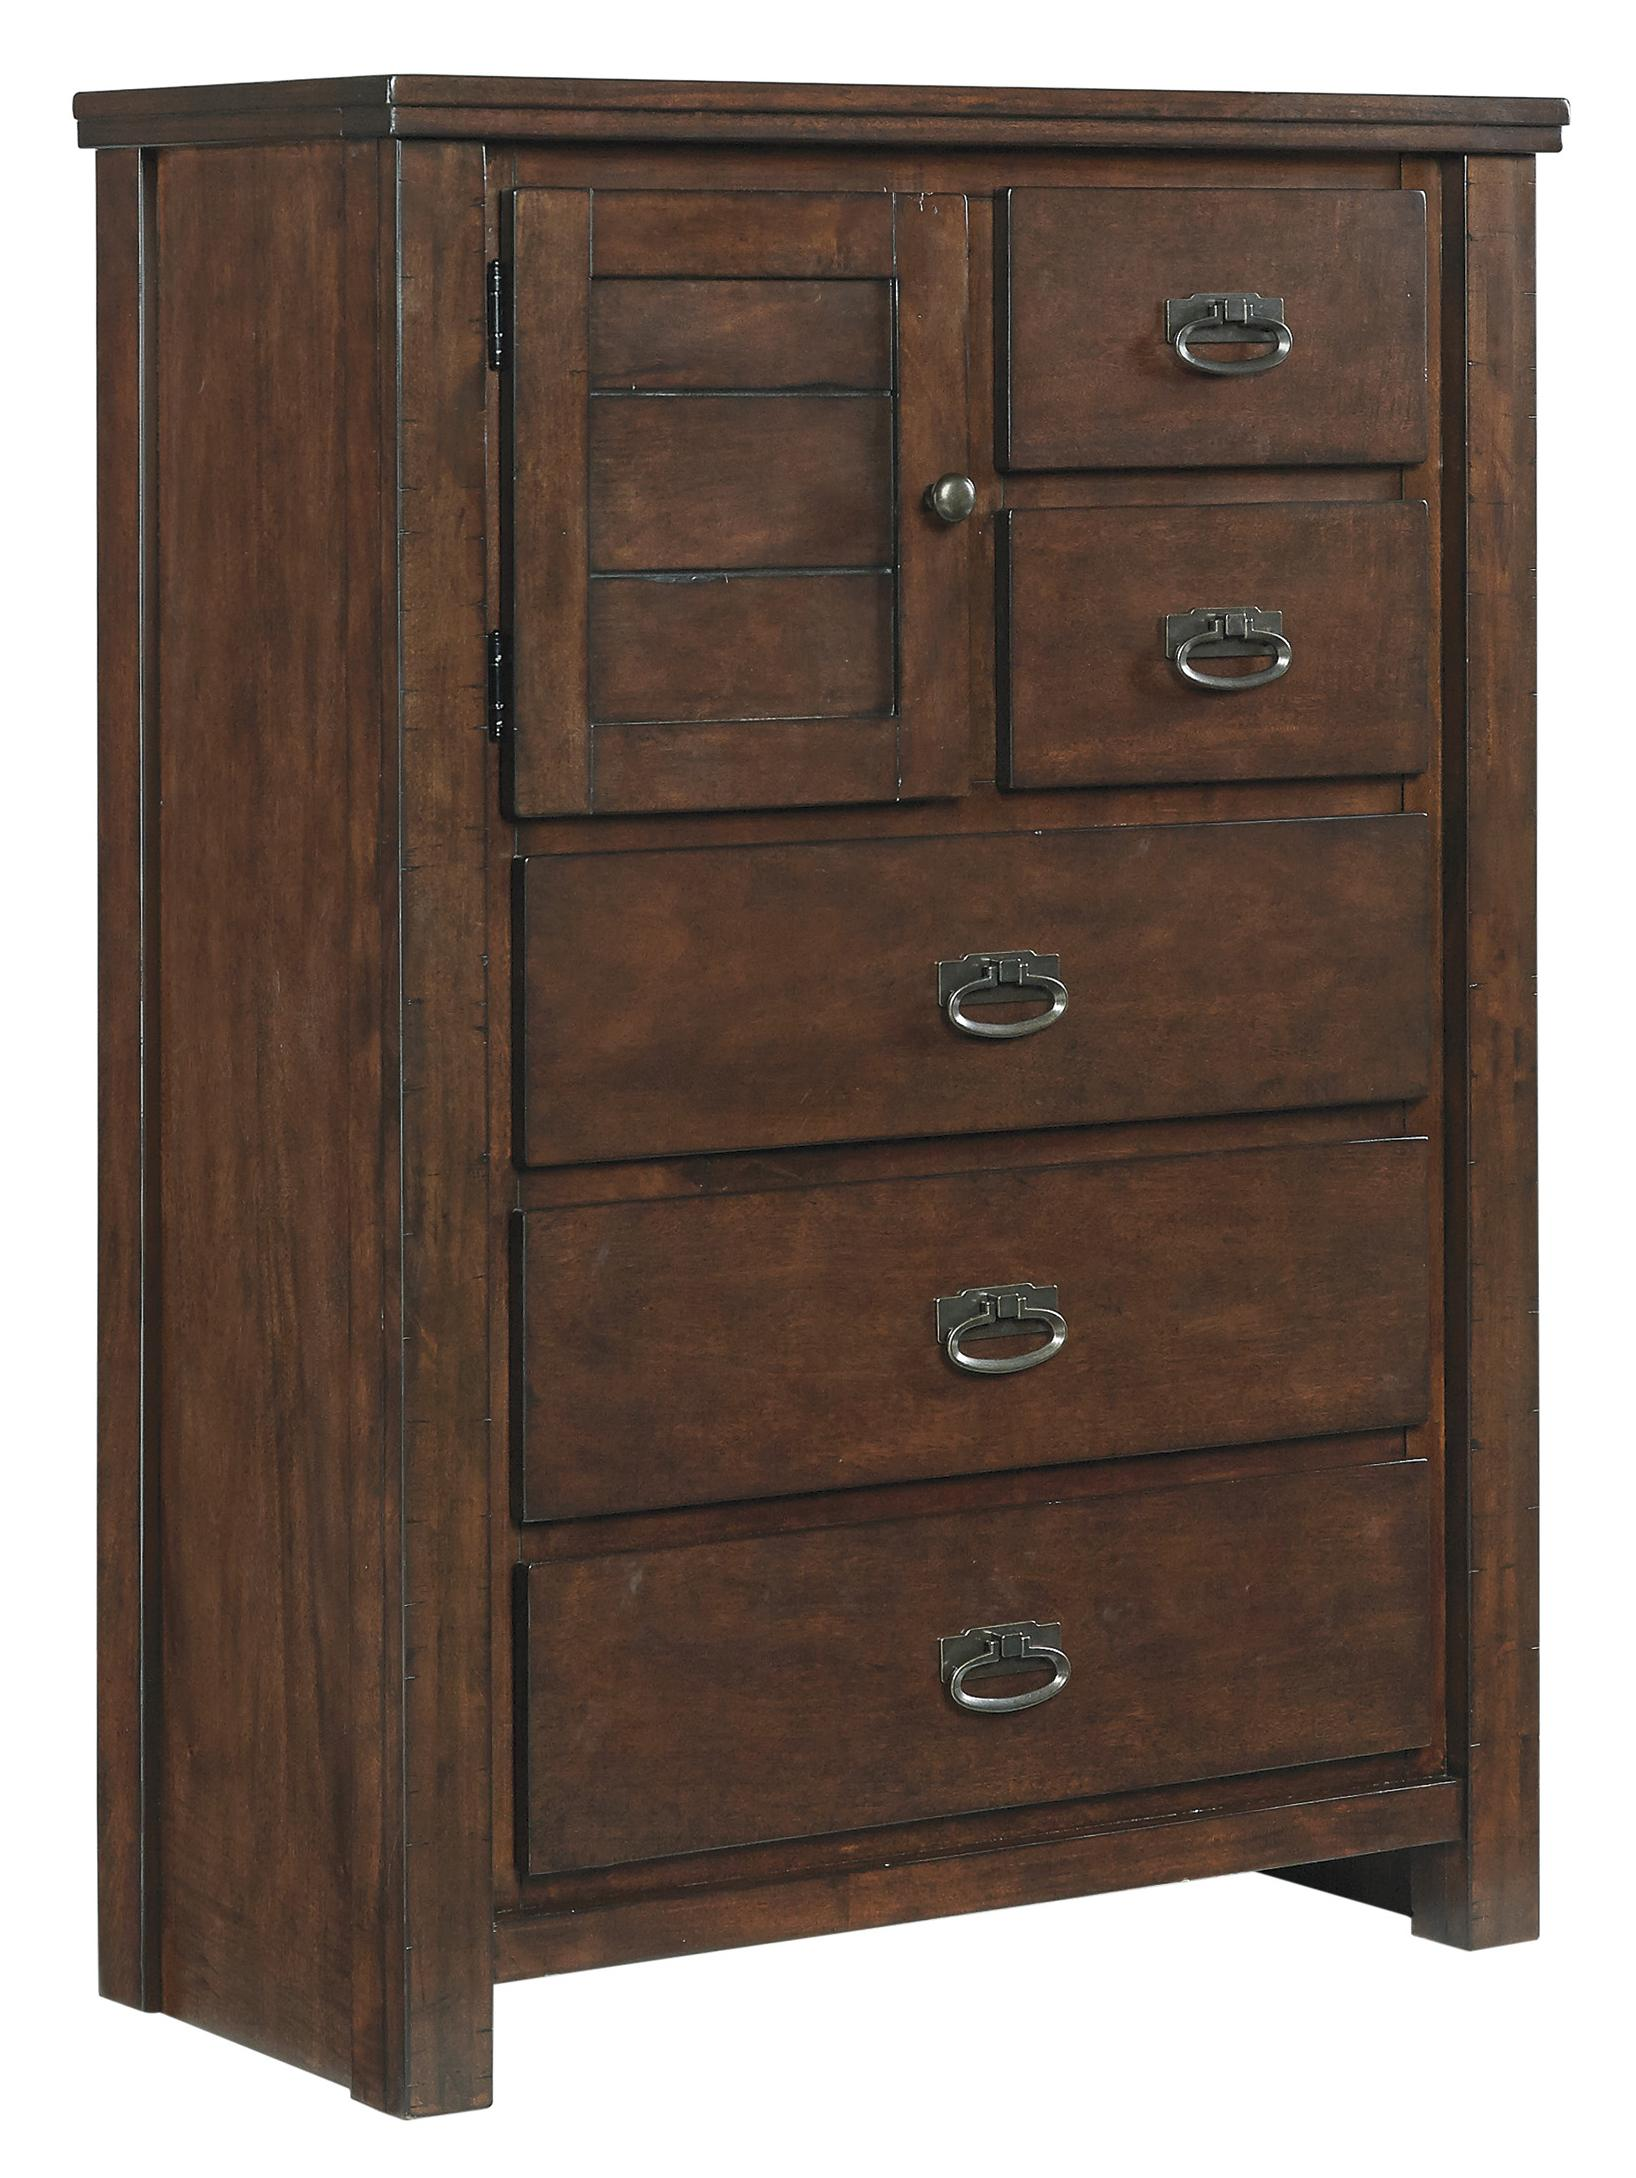 Signature Design by Ashley Ladiville Chest - Item Number: B567-45